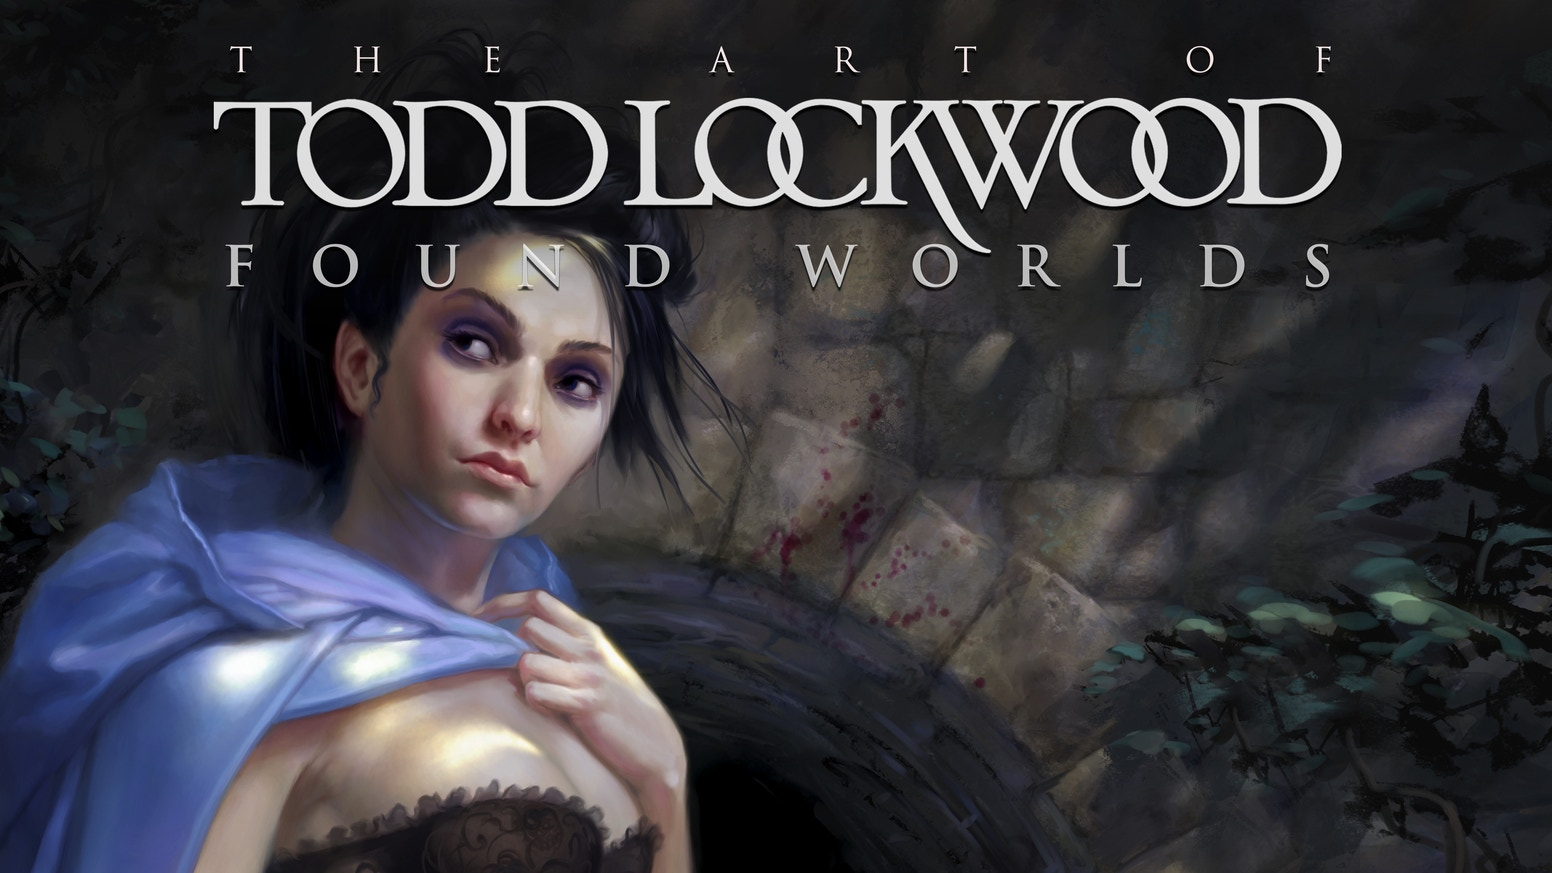 An art book collecting the works of world-renowned illustrator Todd Lockwood